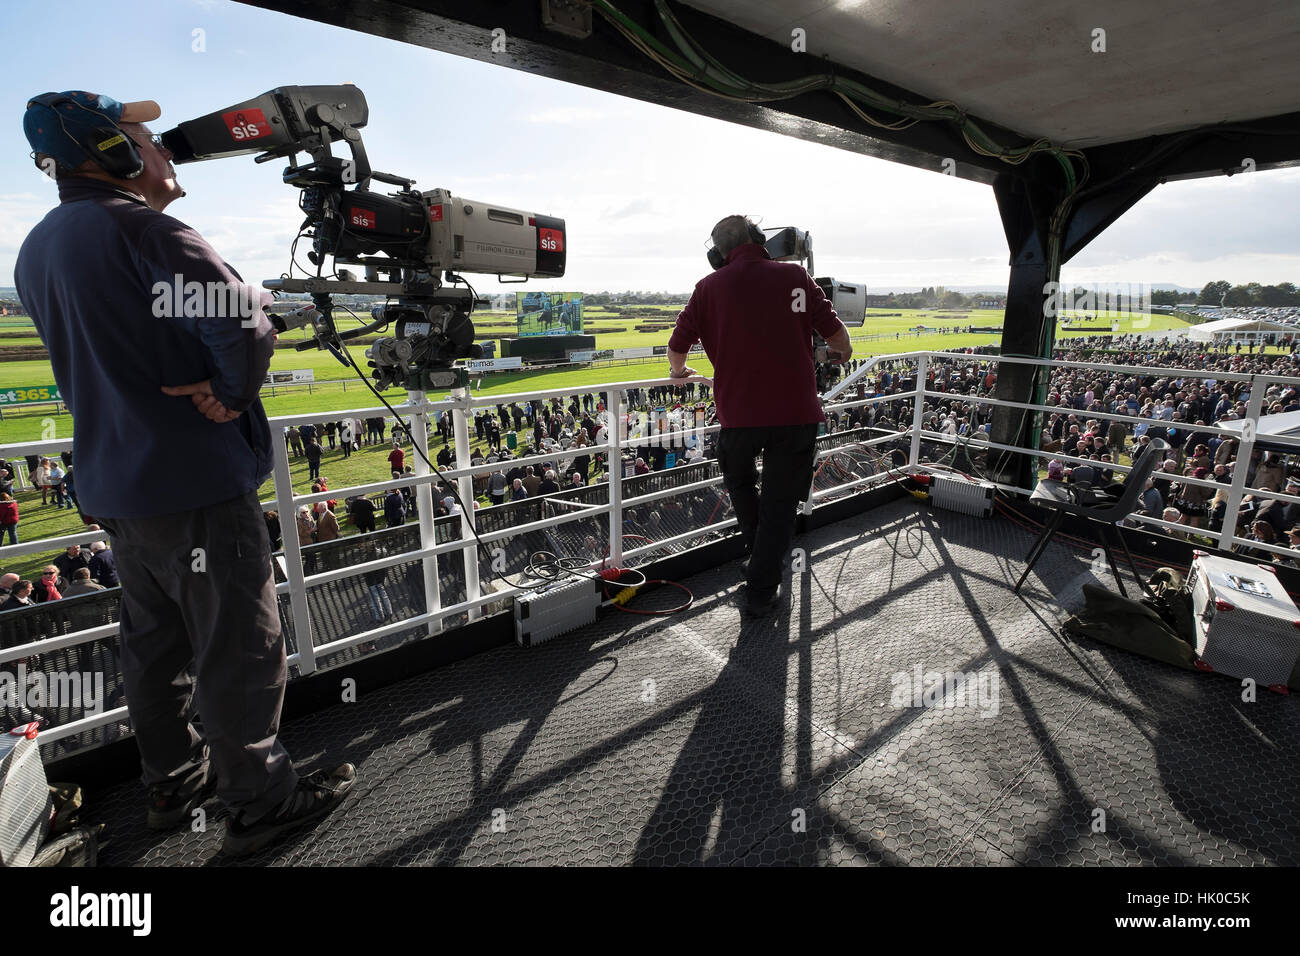 Cameramen film horse racing - Stock Image